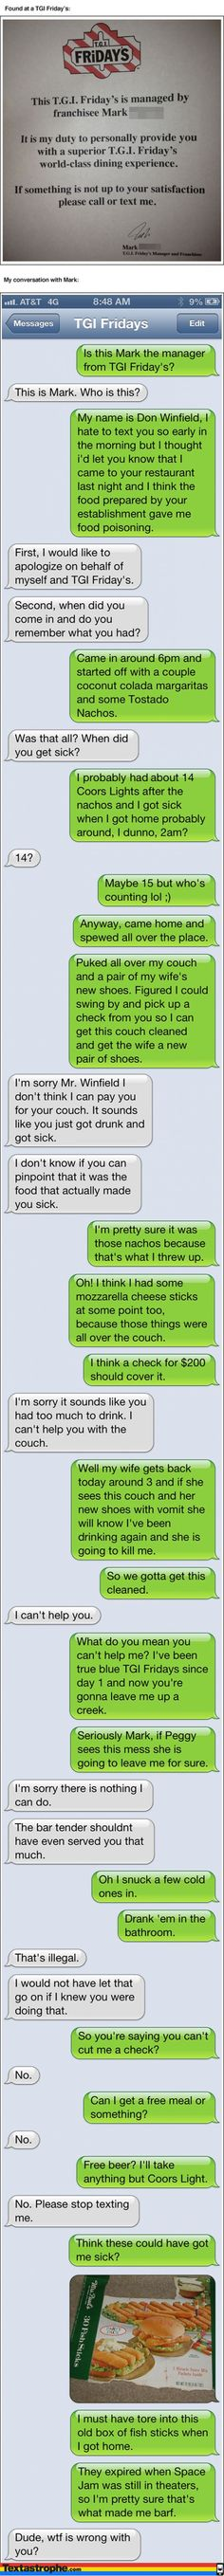 21 Tricks That Took Phone Pranking To A Whole New Level